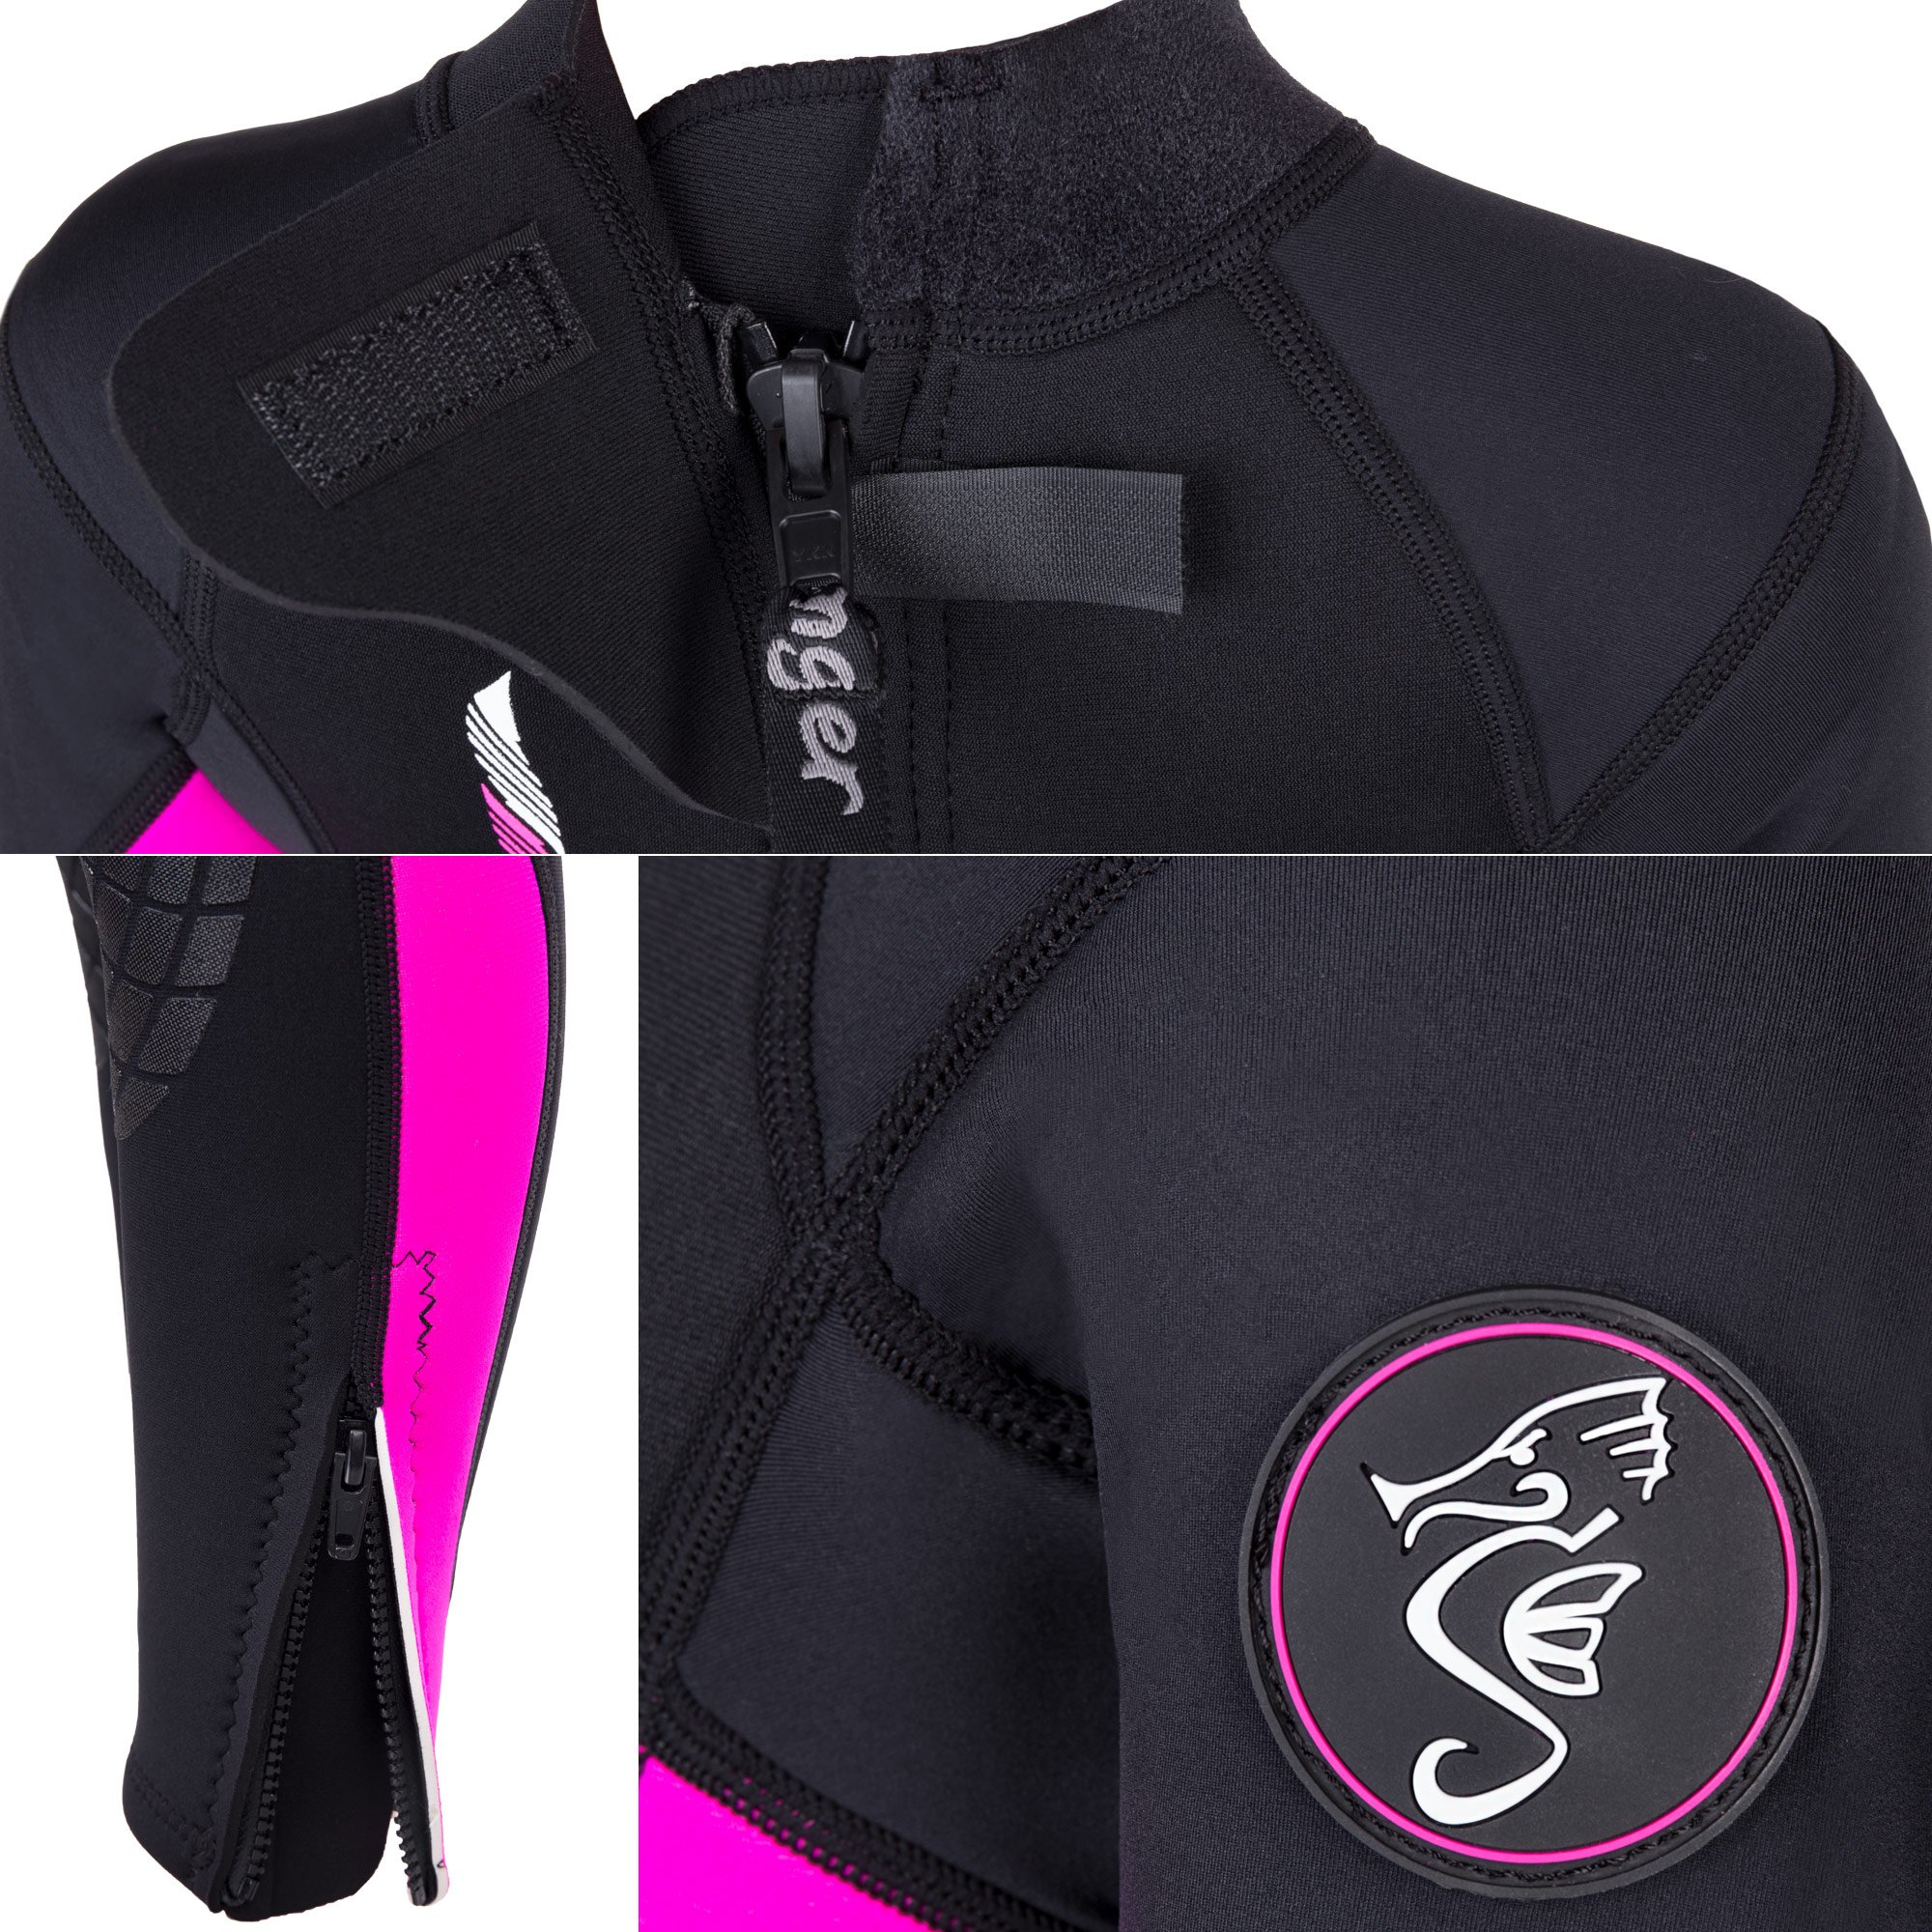 Seavenger Scout 3mm Kids Wetsuit | Full Body Neoprene Suit for Snorkeling, Swimming, Diving (Coral Pink, 6) by Seavenger (Image #4)